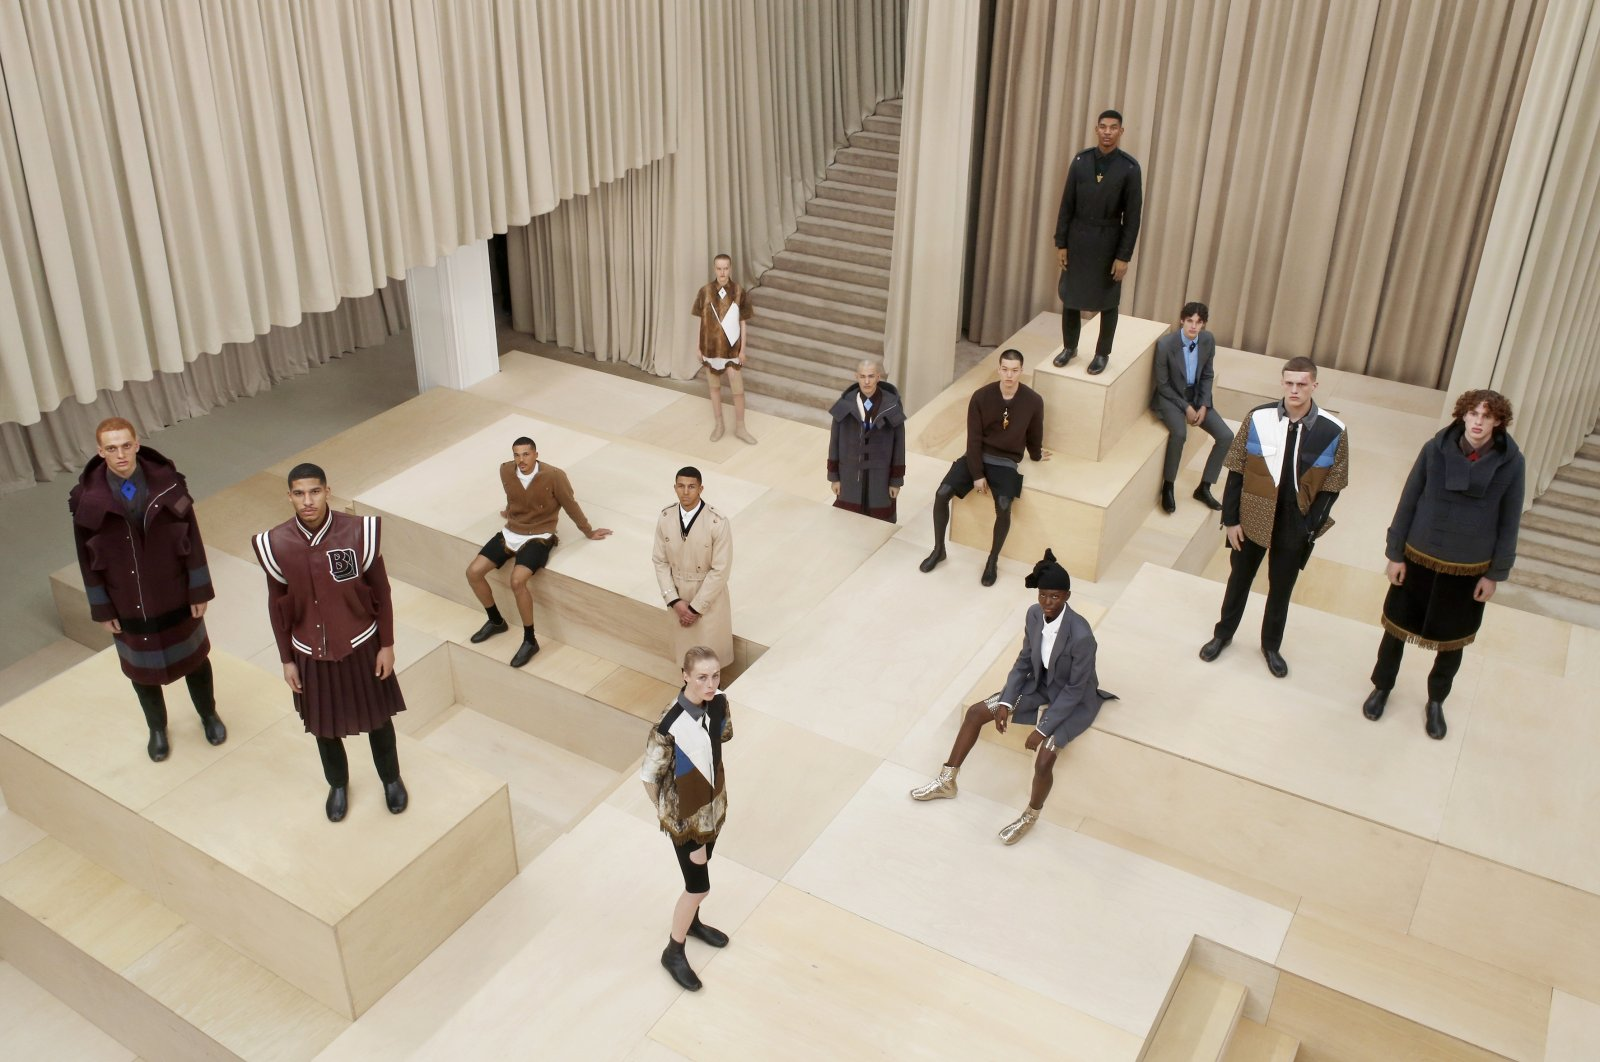 In this handout image provided by Burberry, models pose on the runway during the Burberry Autumn/Winter 2021 Menswear Presentation during LFW February 2021 at the Burberry flagship Regent Street store on February 22, 2021 in London, United Kingdom. (Burberry via Getty Images)